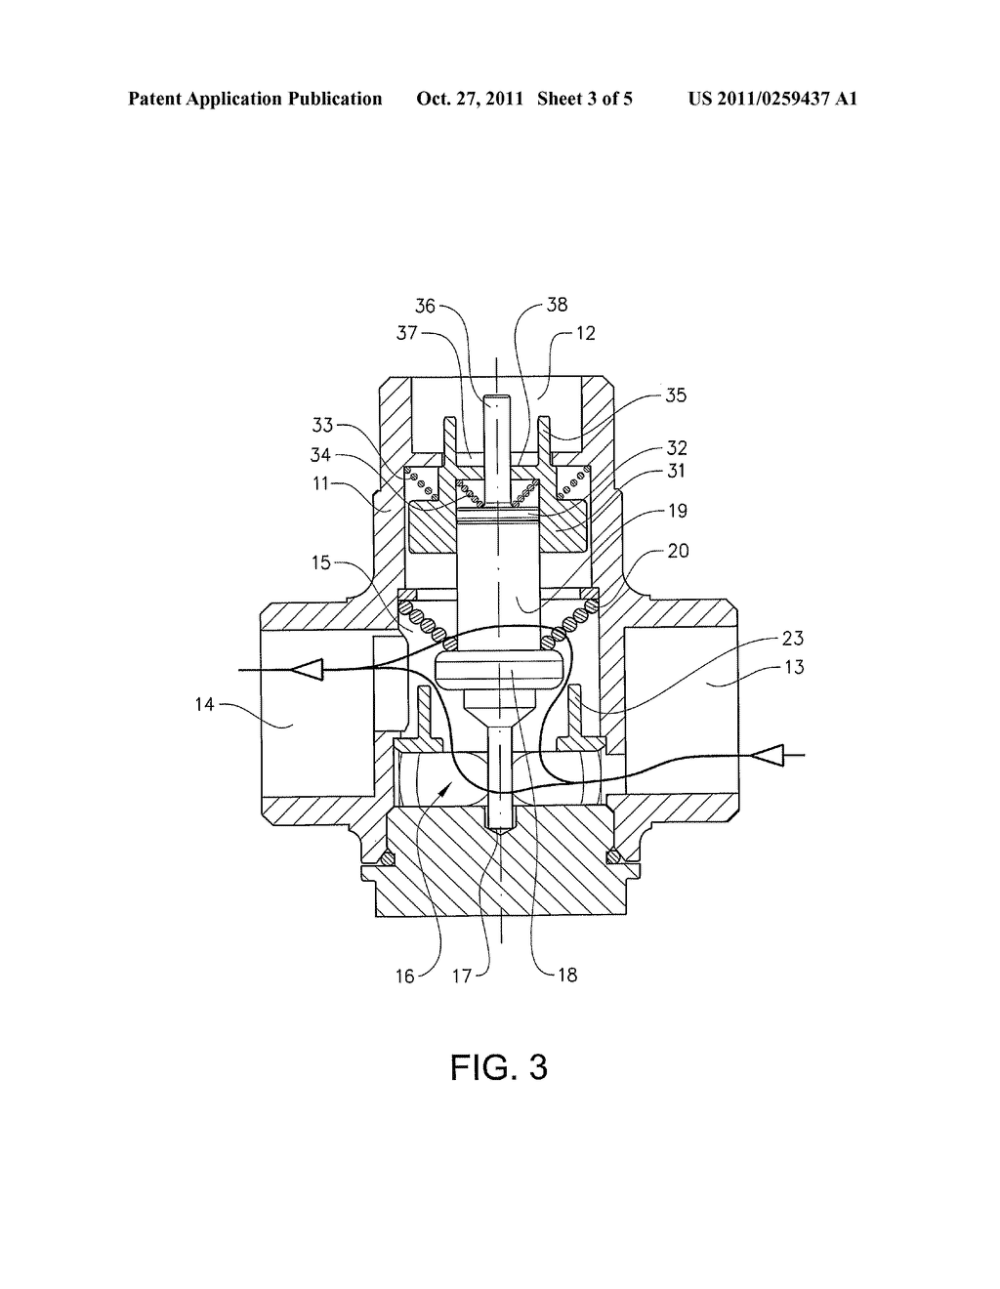 medium resolution of thermostatic mixing valve for a domestic heating system diagram schematic and image 04